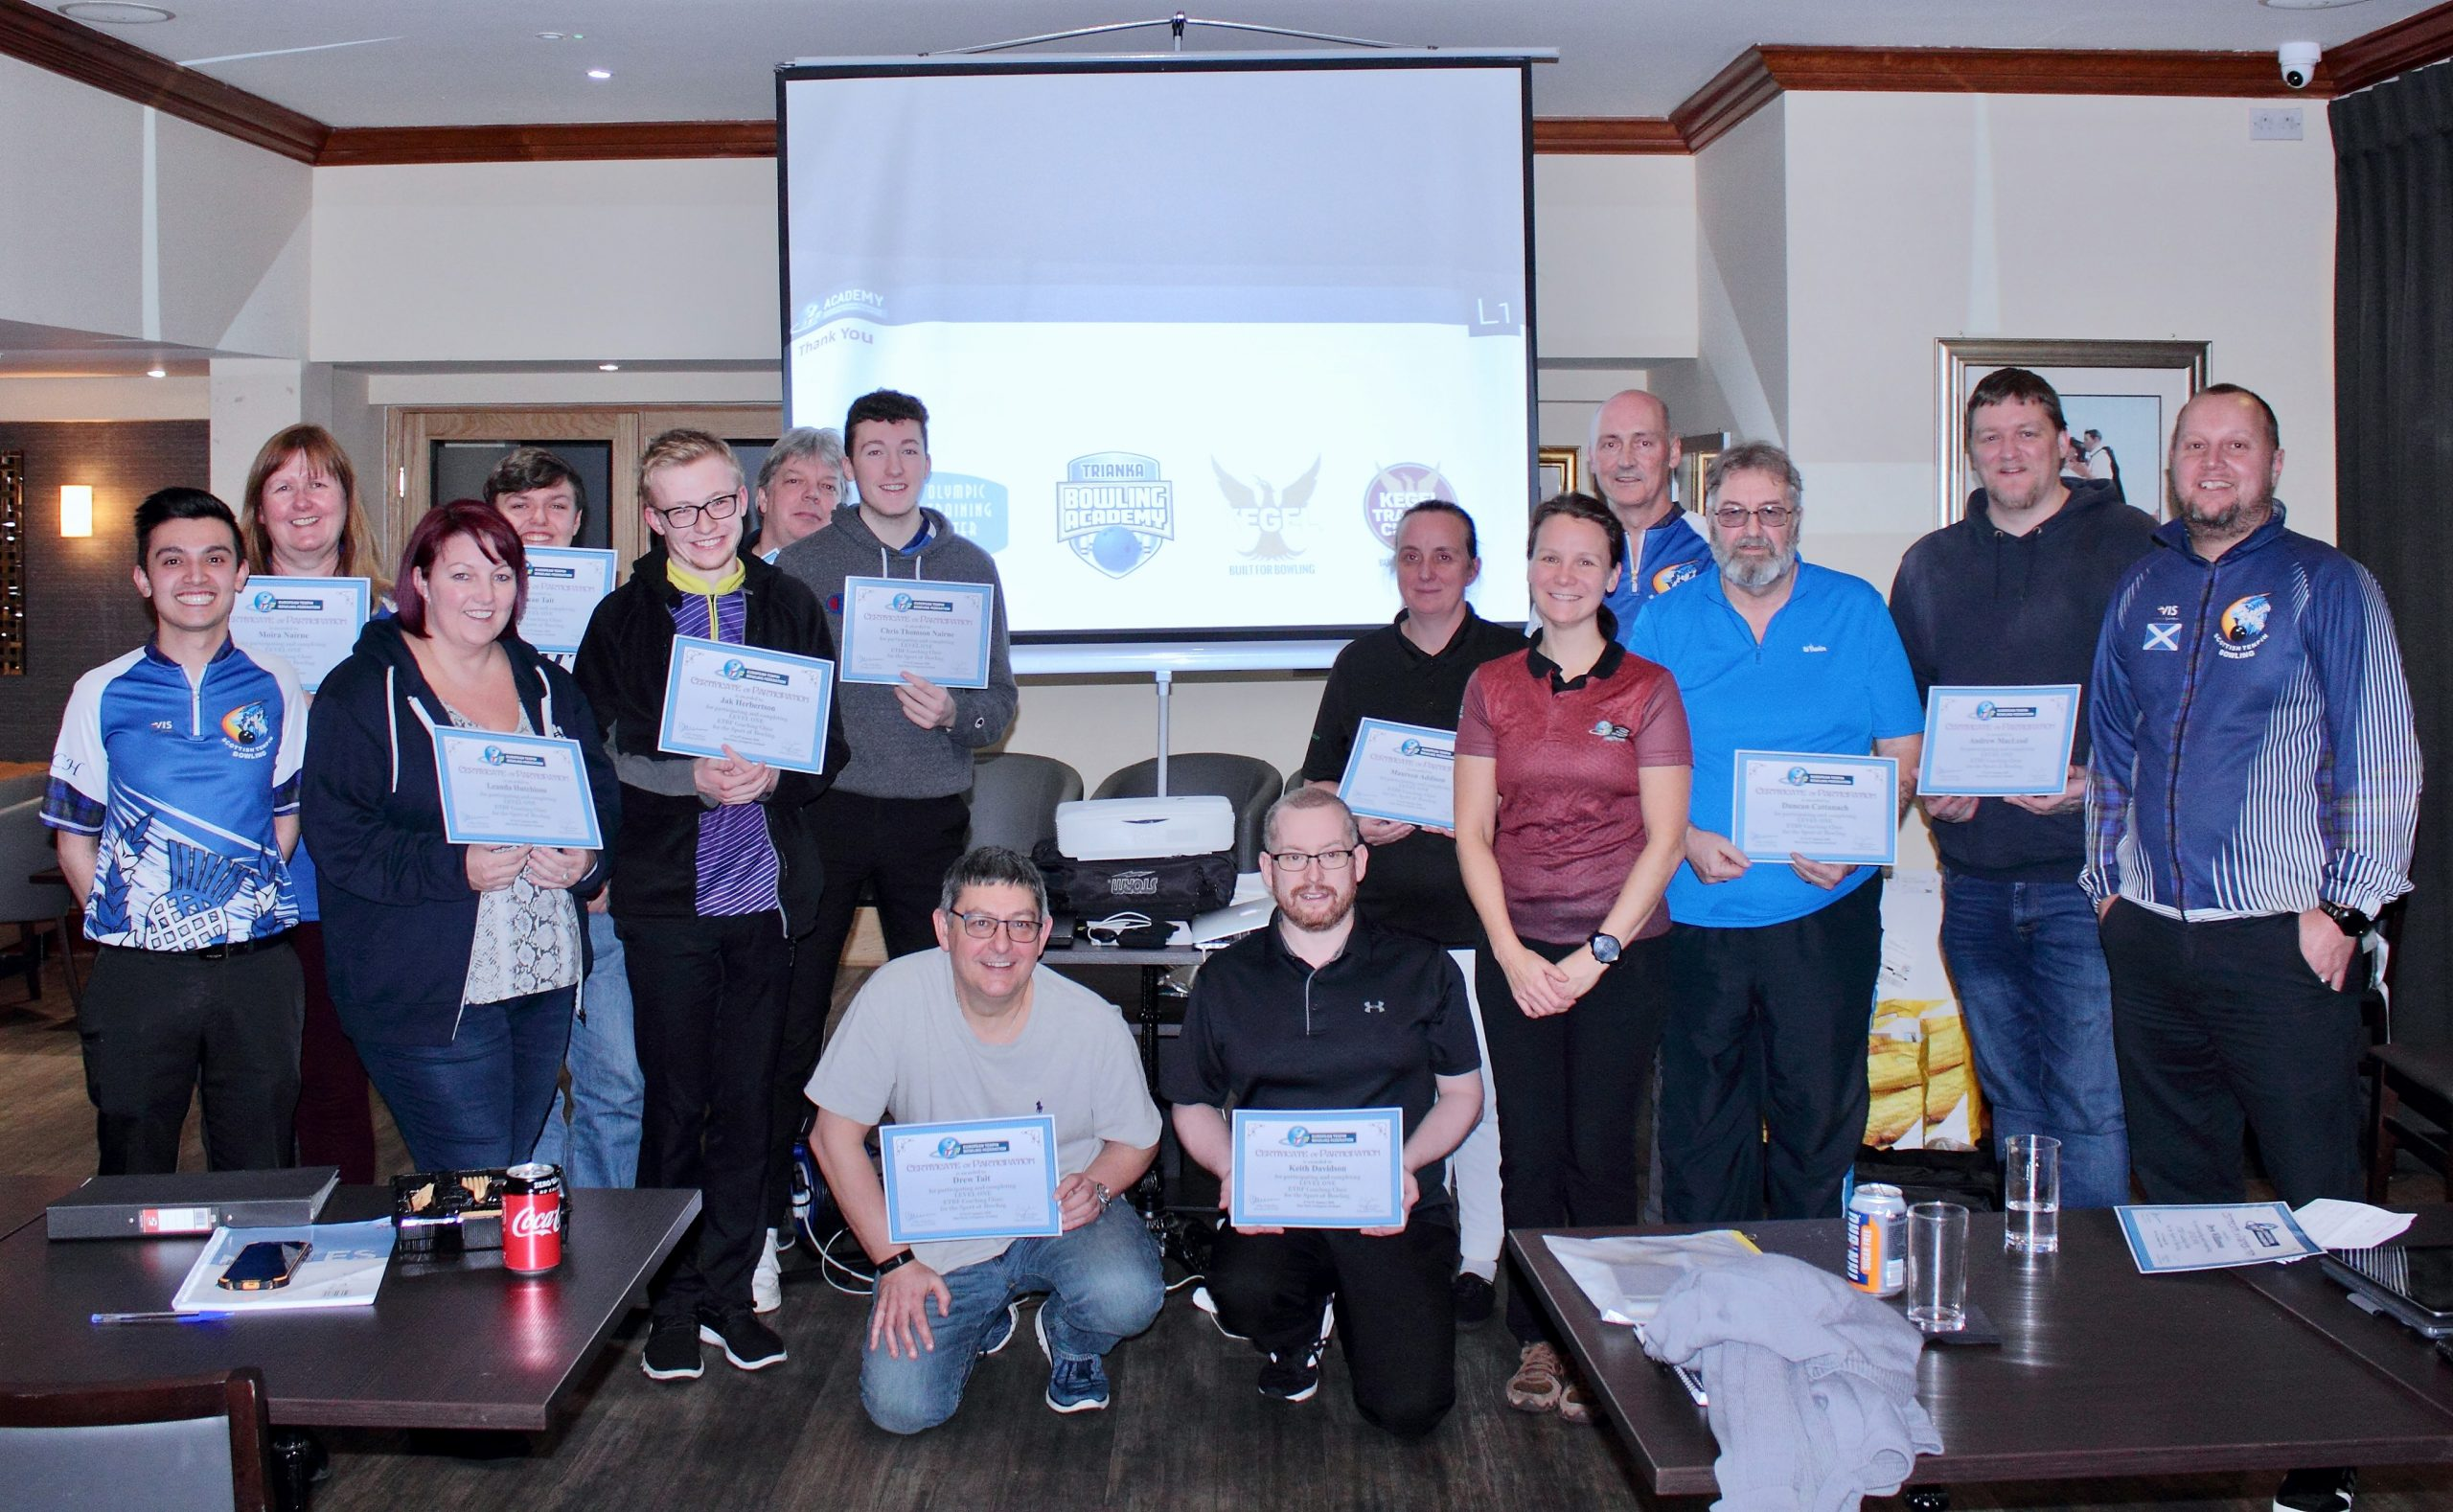 New STB ETBF Level 1 Participants